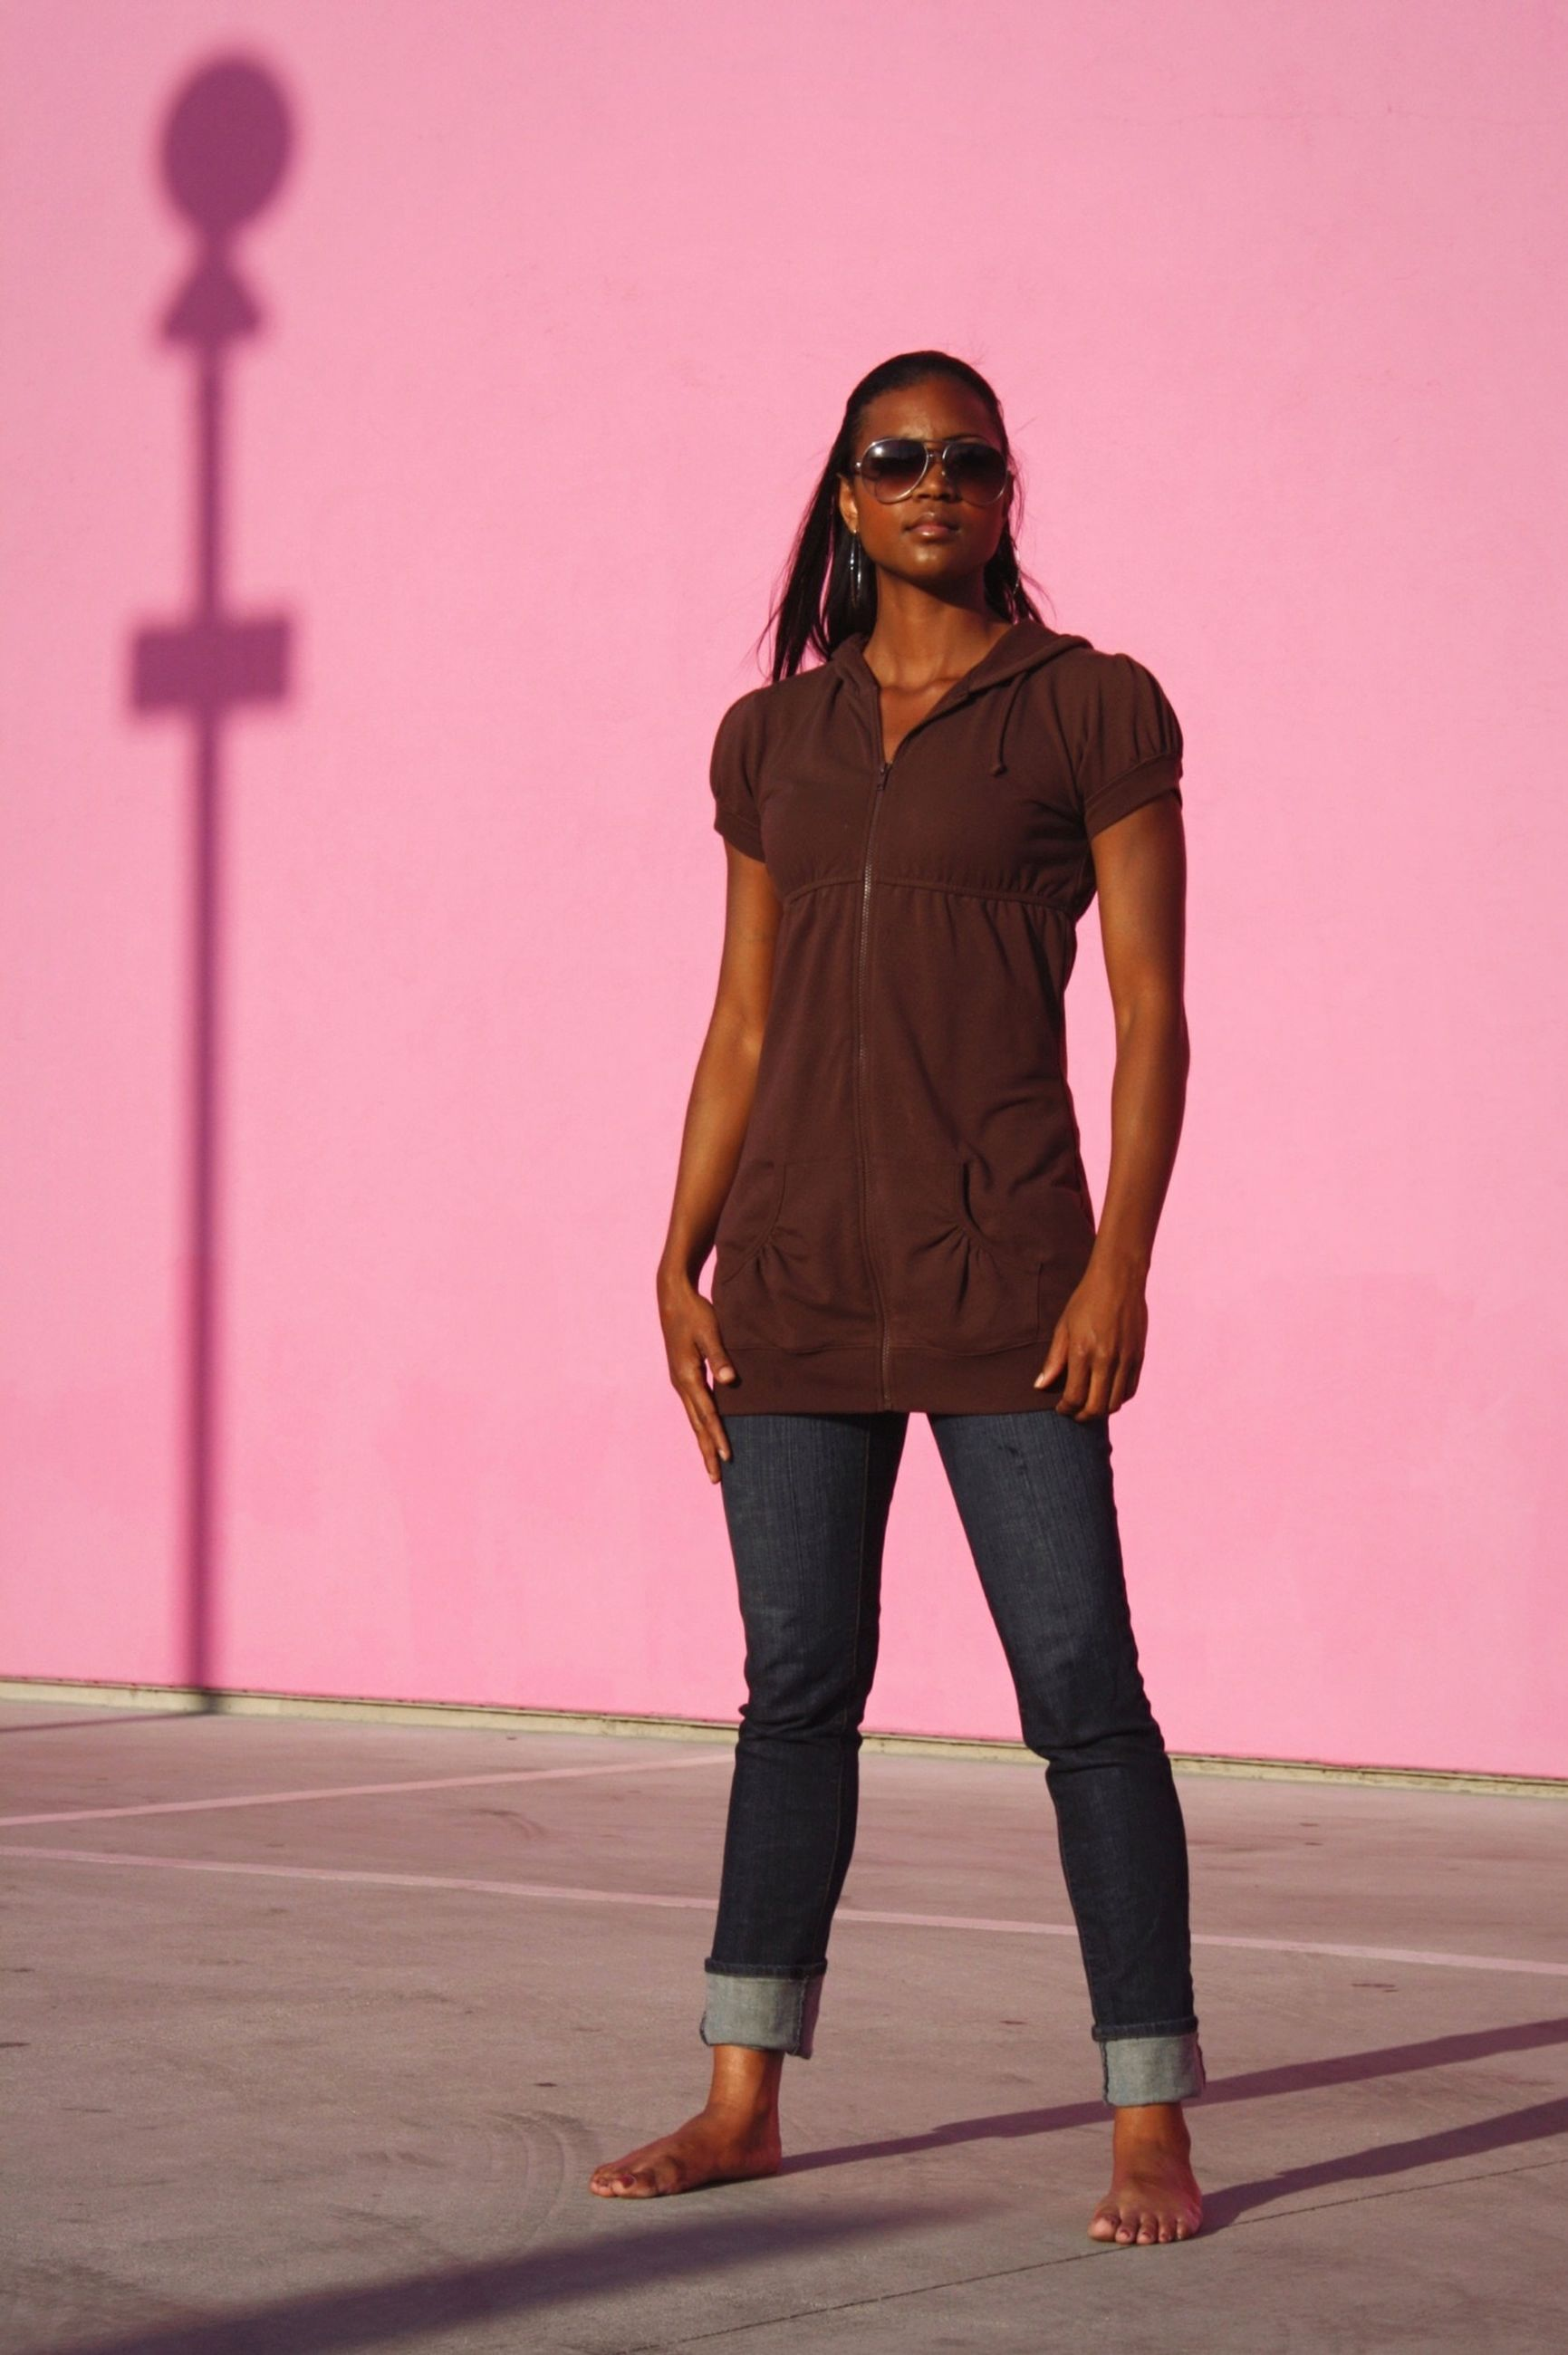 young adult, standing, full length, casual clothing, lifestyles, front view, young women, wall - building feature, leisure activity, fashion, looking at camera, person, three quarter length, portrait, architecture, built structure, fashionable, hands in pockets